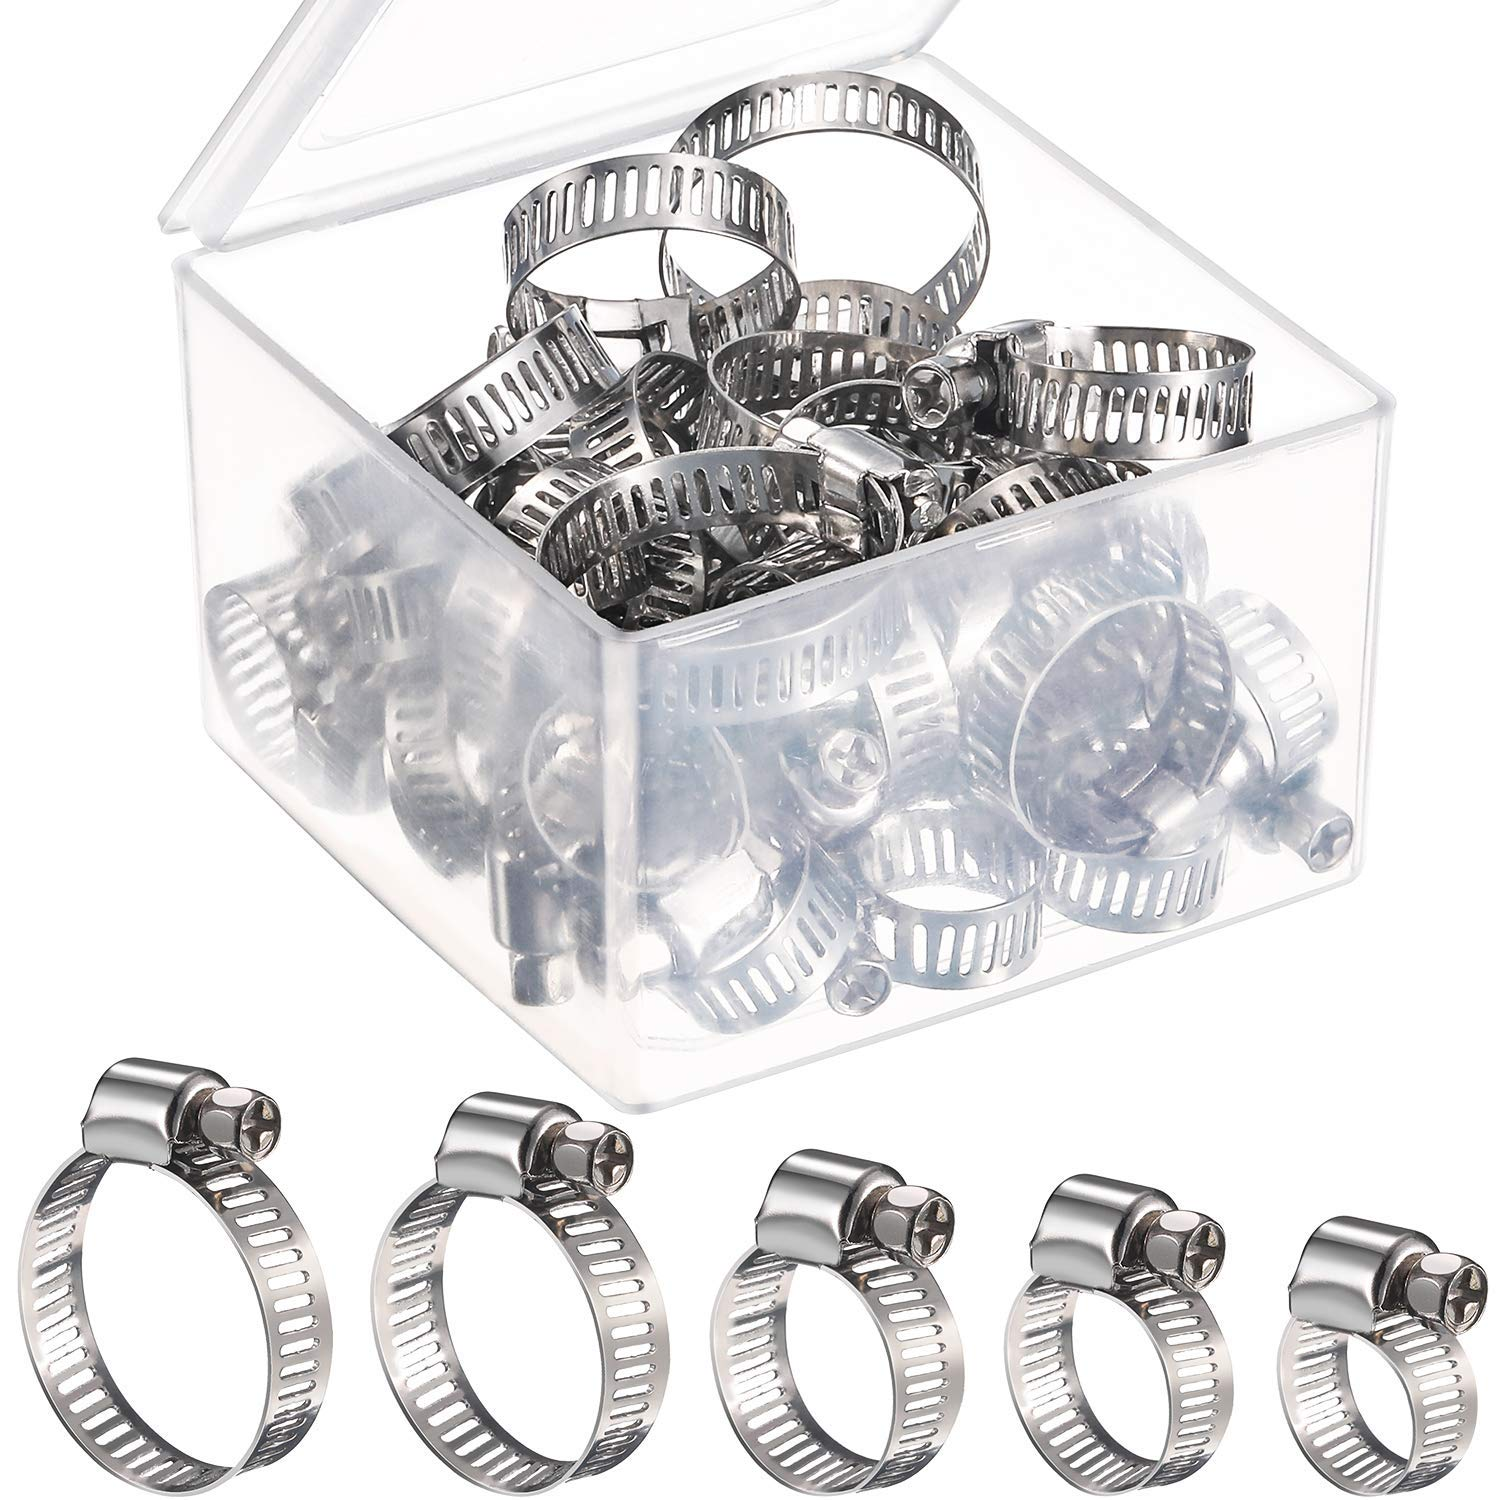 35-51 10pcs Hose Clamps Stainless Steel Adjustable Screw Band Fuel Line Worm Gear Clips Hydraulic Equipment